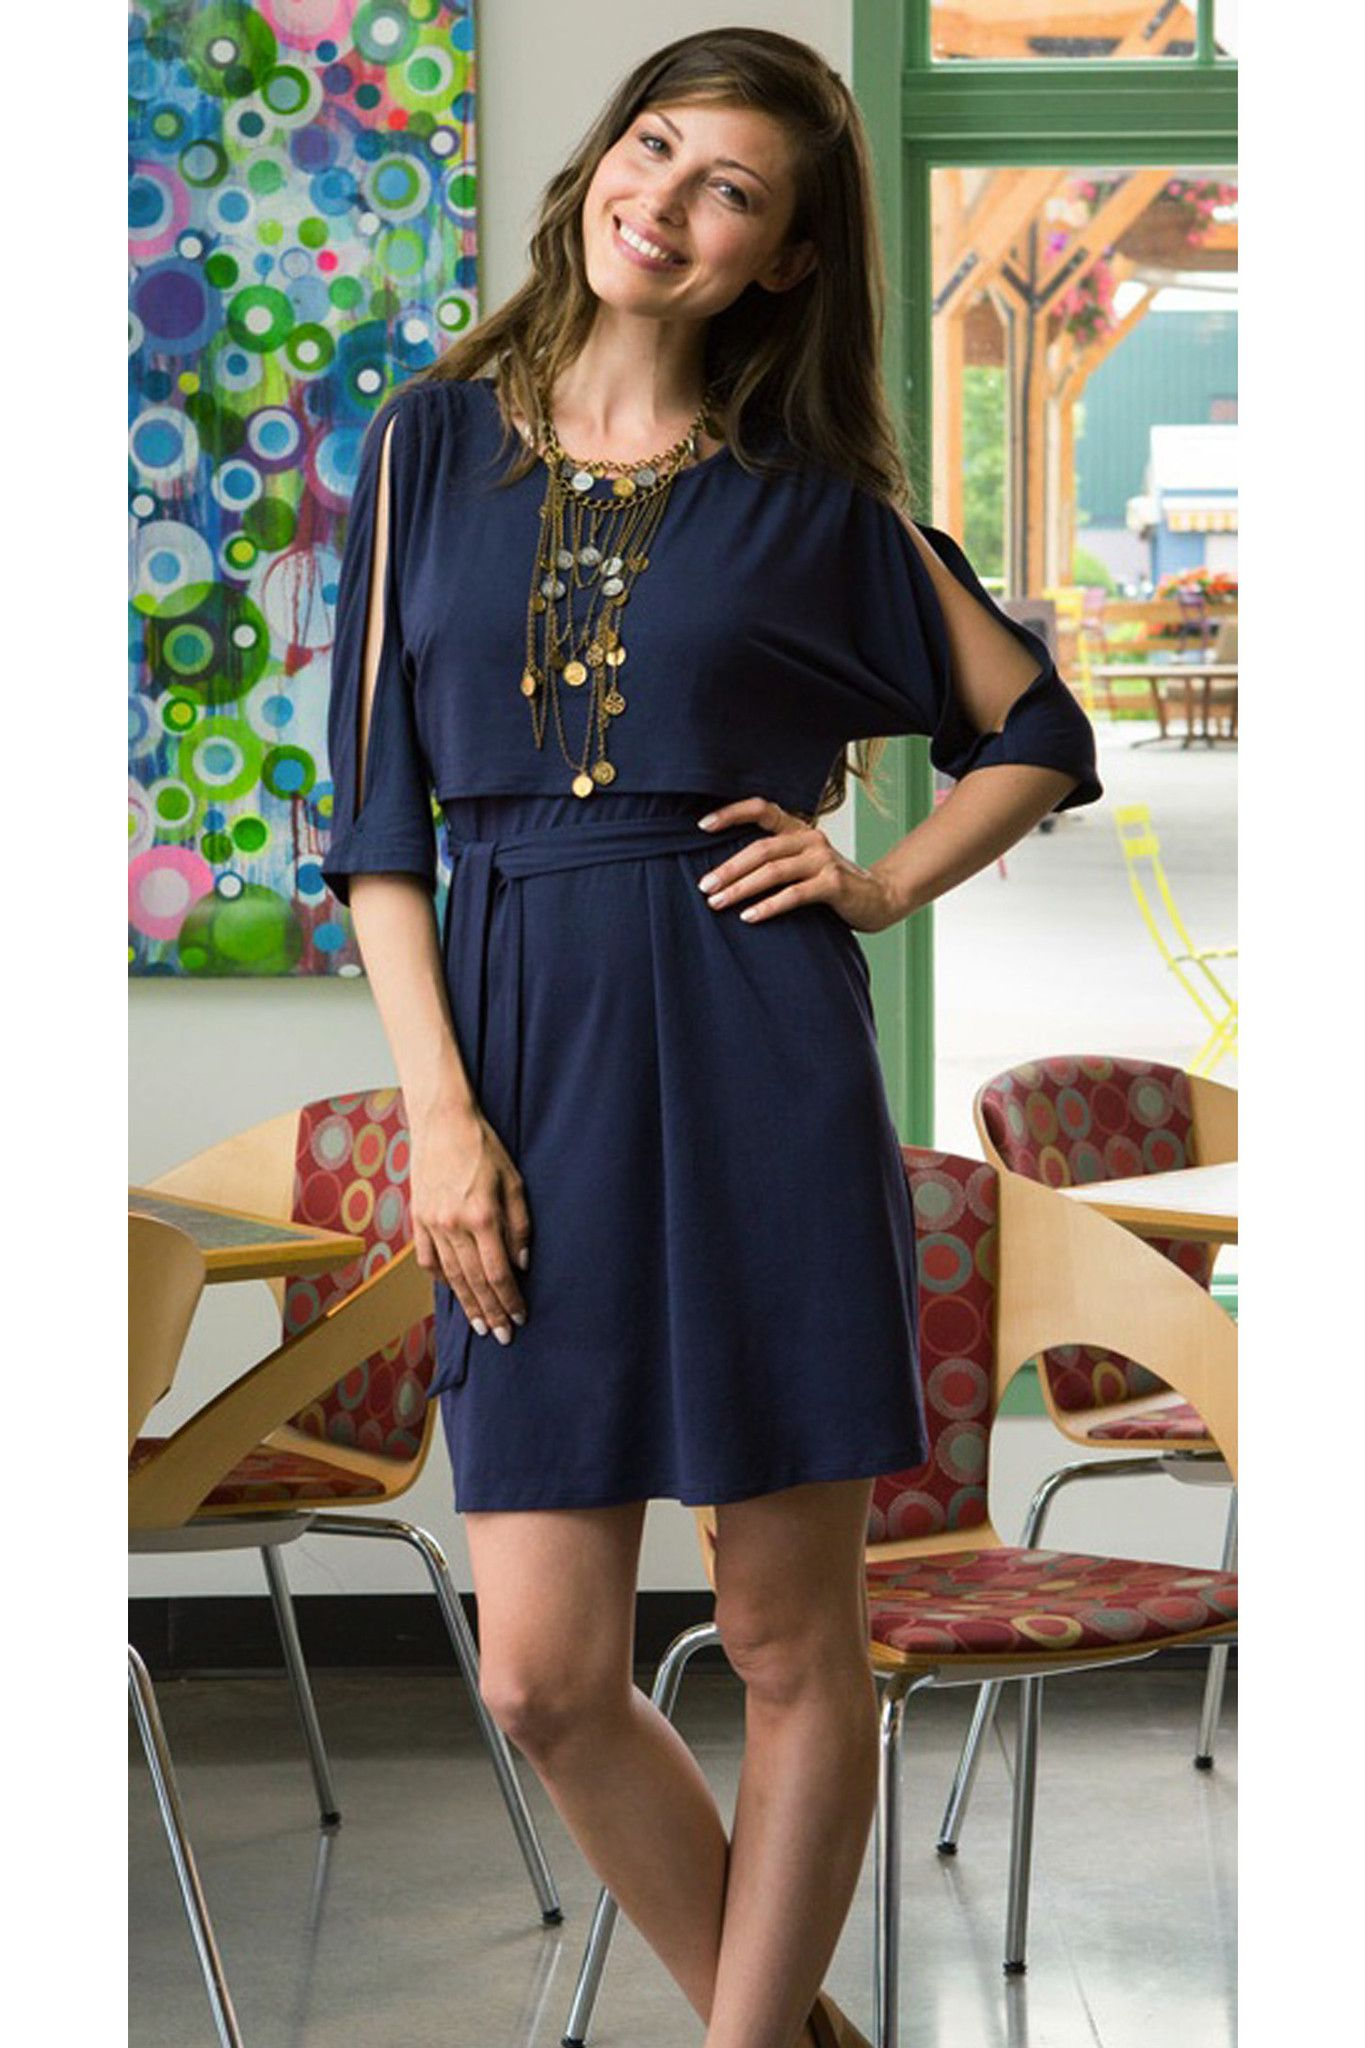 287185ef1f36 Everyday nursing dress is fun and fashionable and perfect for any occasion.  No one would ever guess it is for breastfeeding. Nurse discreetly in this  dress.